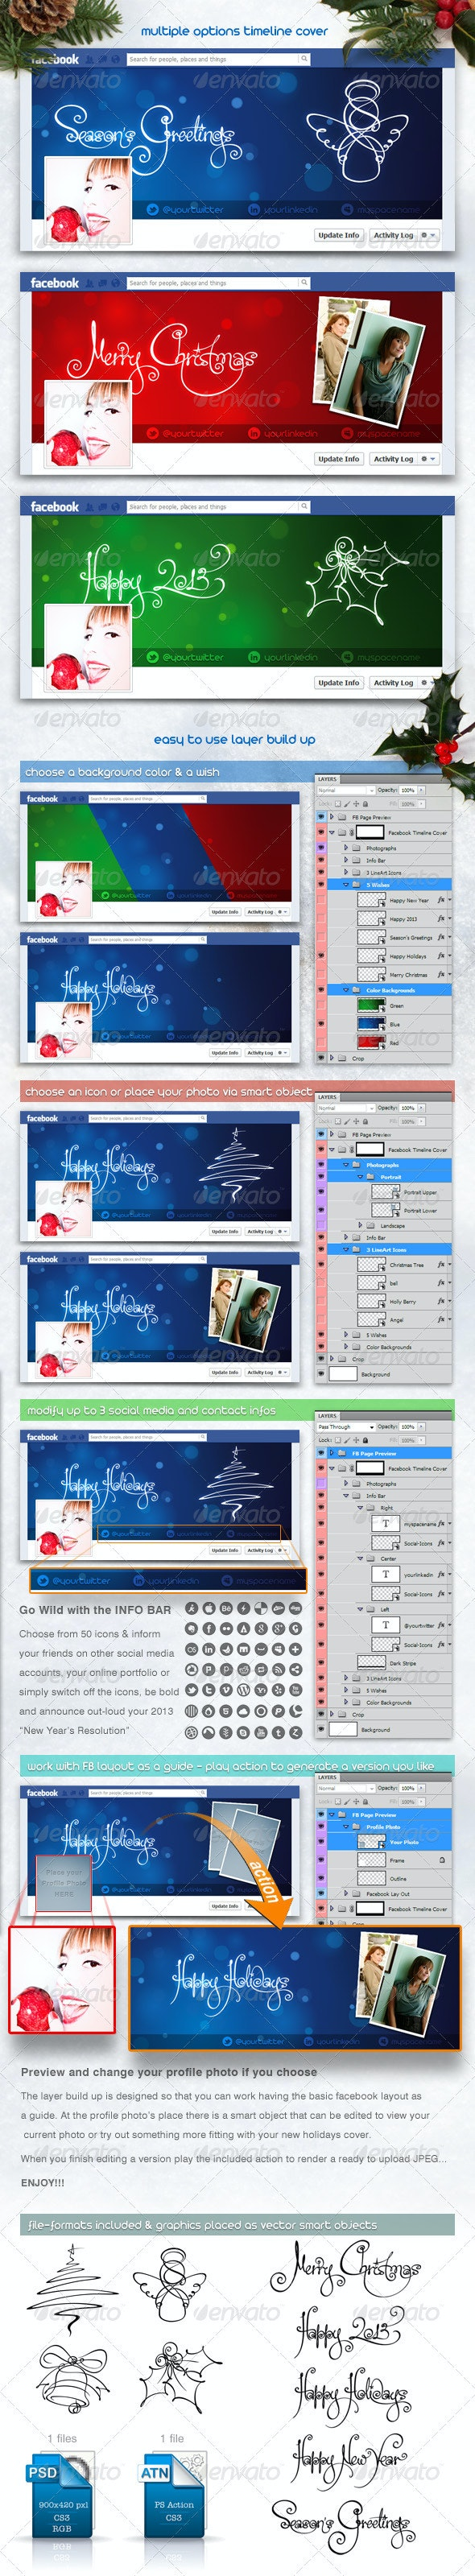 FB Christmas and New Year Multiple Timeline Cover - Facebook Timeline Covers Social Media